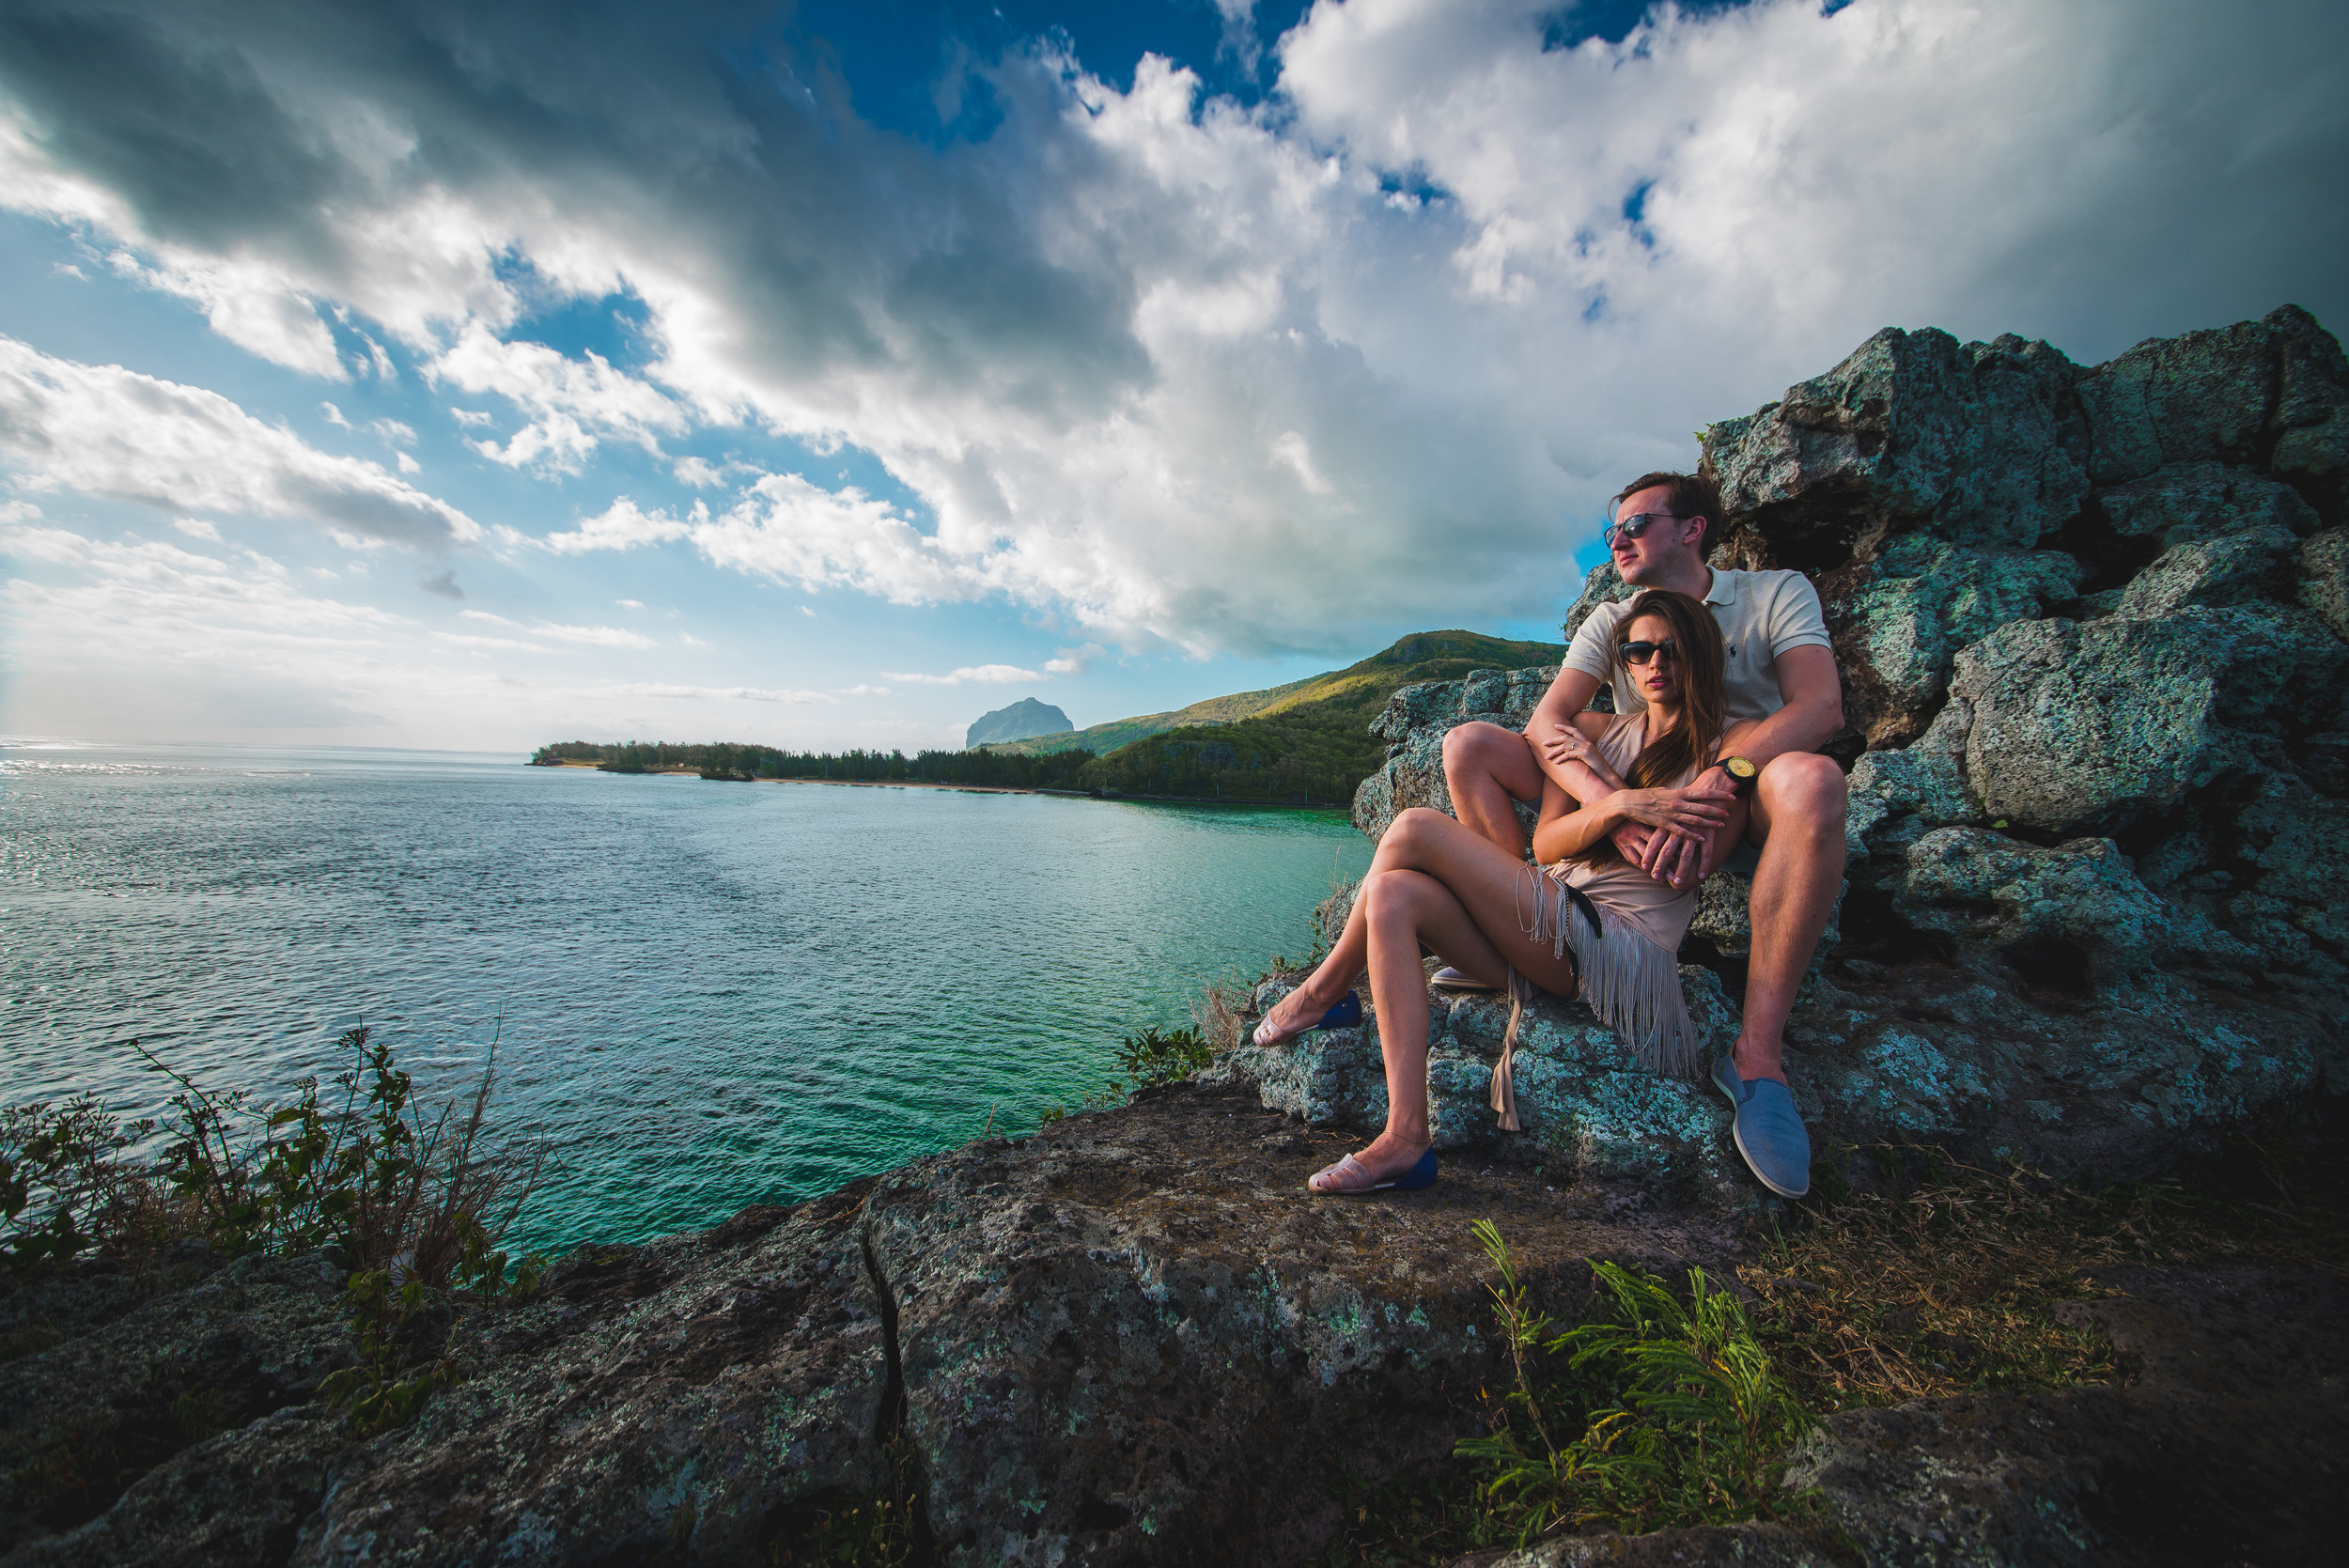 Mauritius Wedding Photographer Mantas Kubilinskas-33.jpg